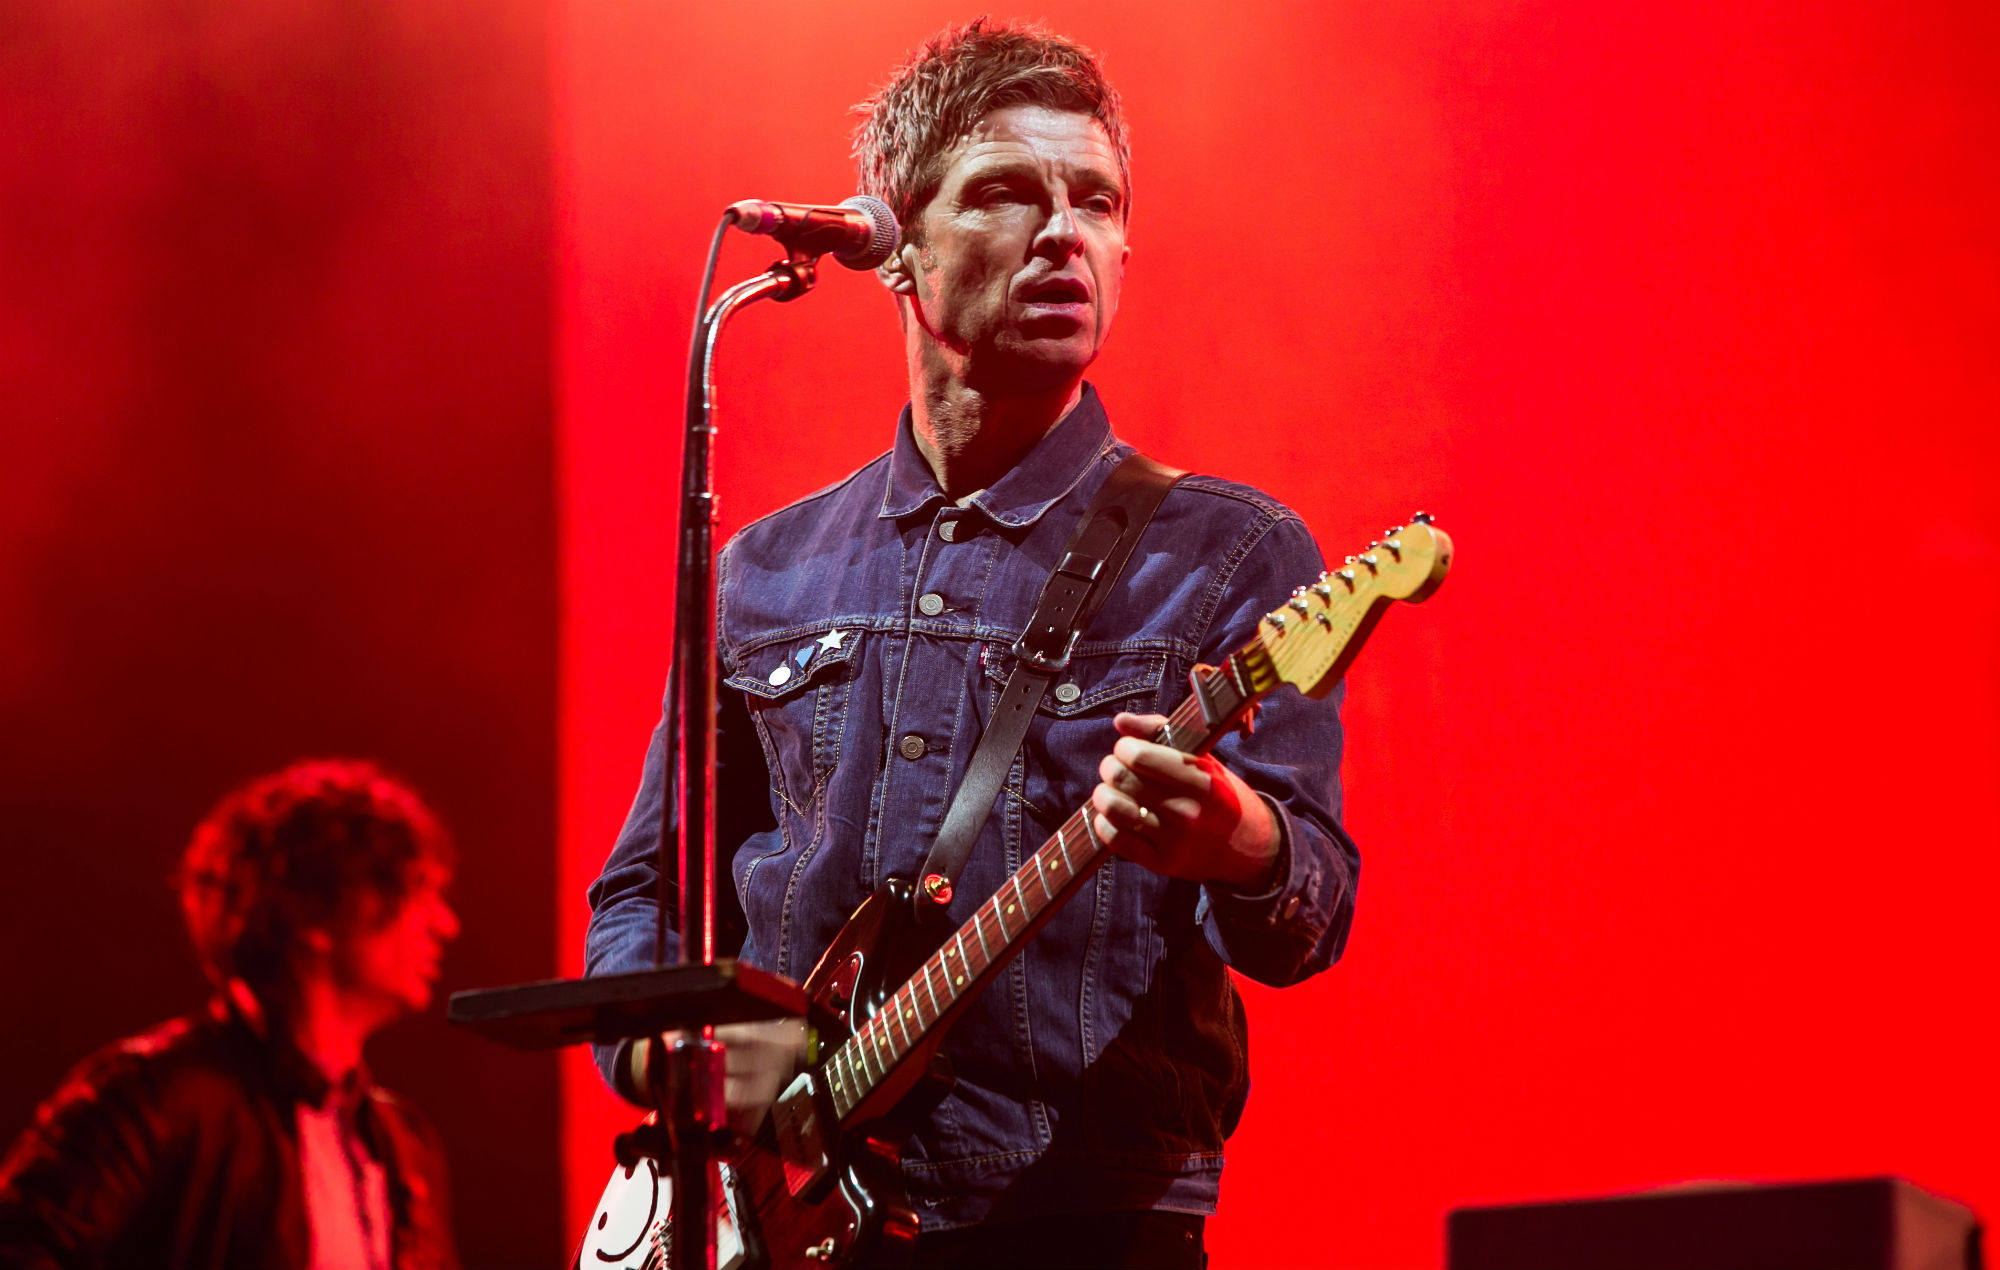 Noel Gallagher S High Flying Birds Announced As 2019